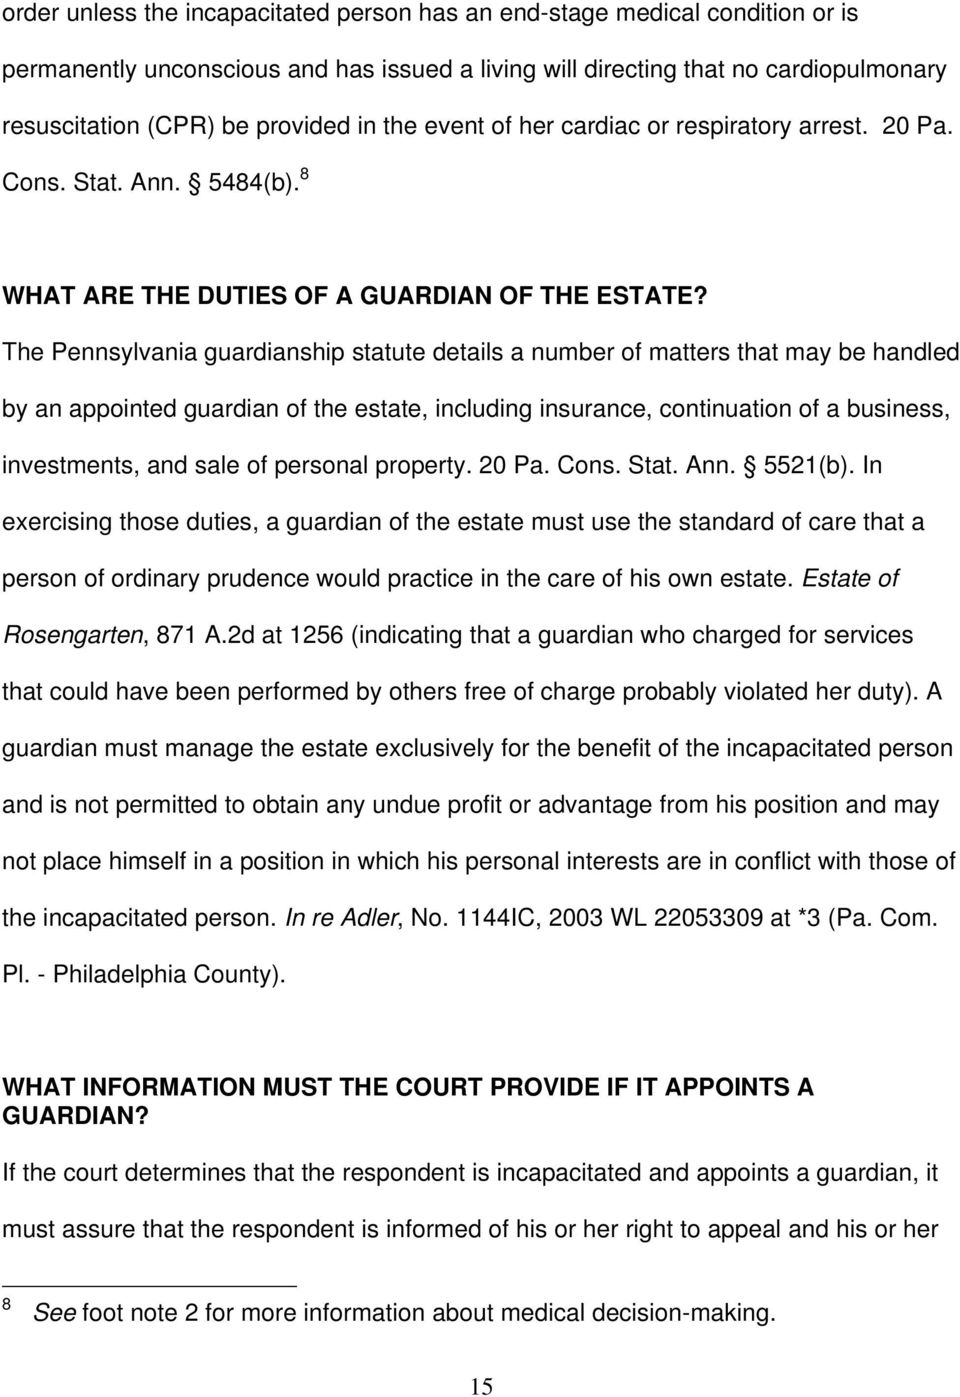 The Pennsylvania guardianship statute details a number of matters that may be handled by an appointed guardian of the estate, including insurance, continuation of a business, investments, and sale of